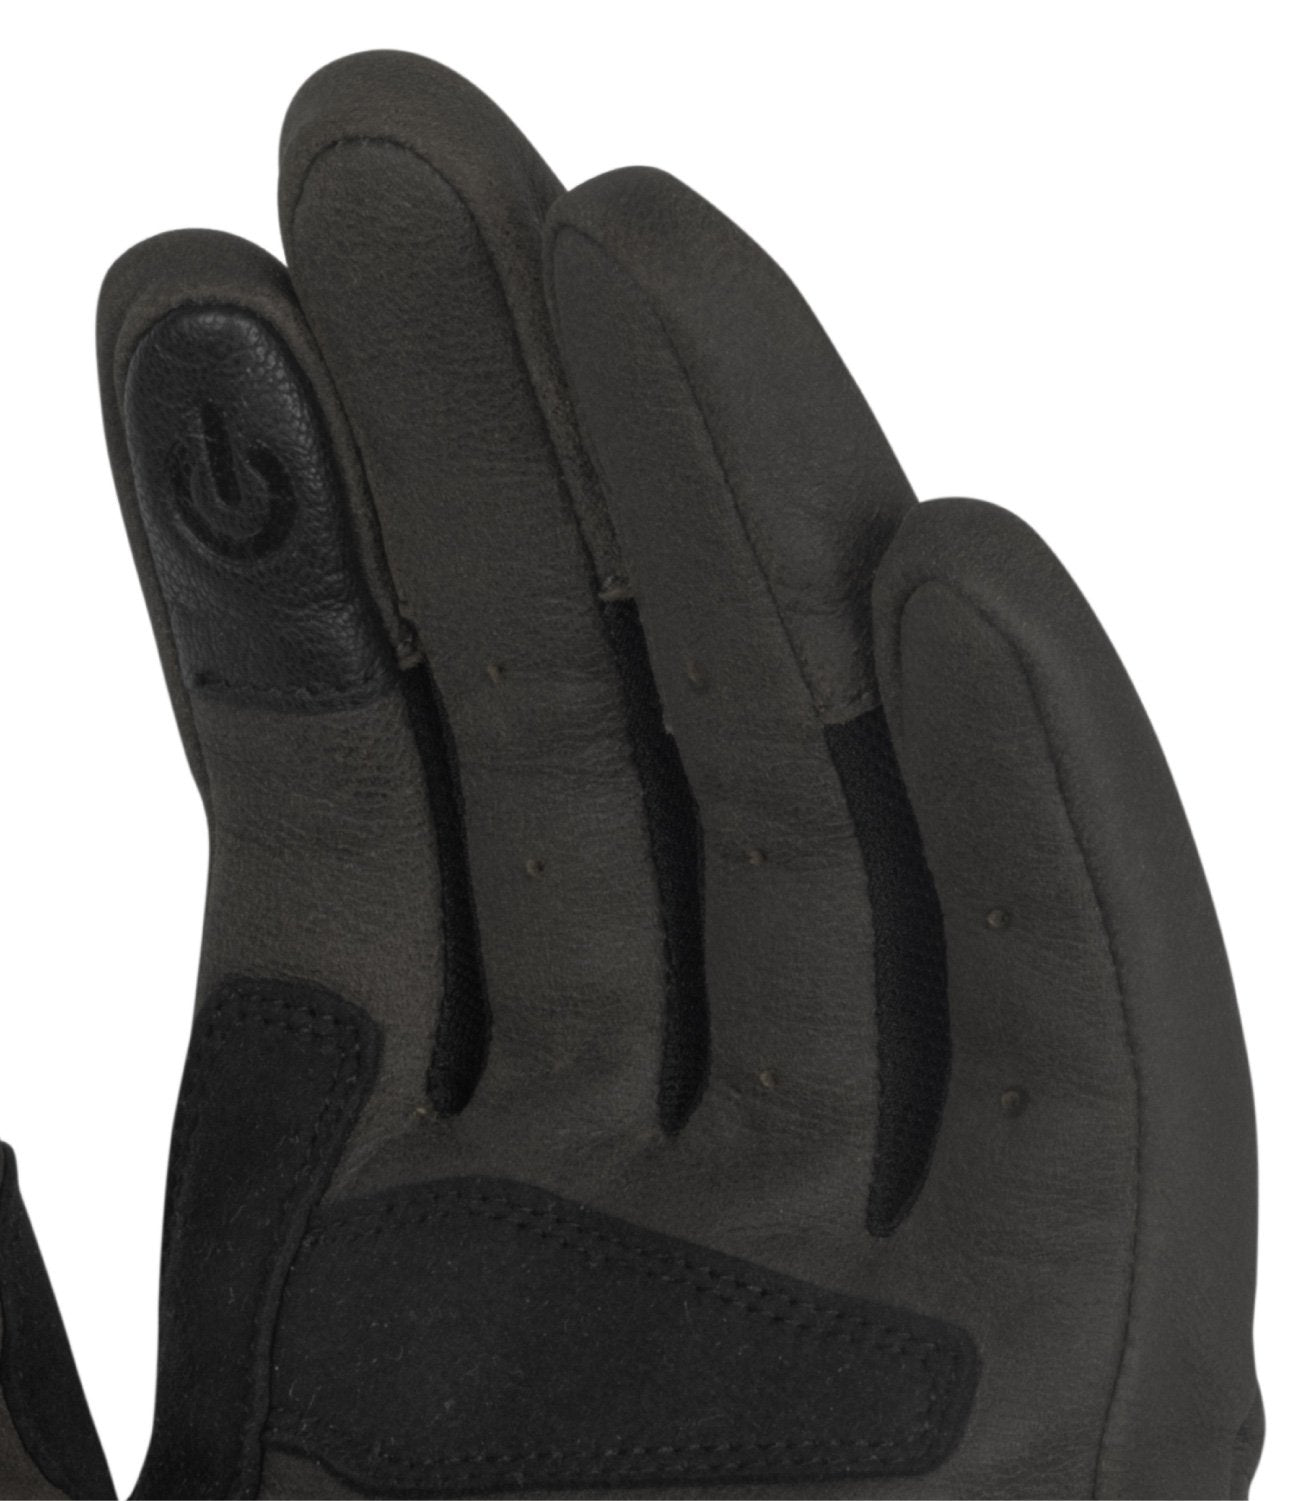 Rynox Urban Gloves Copper 8